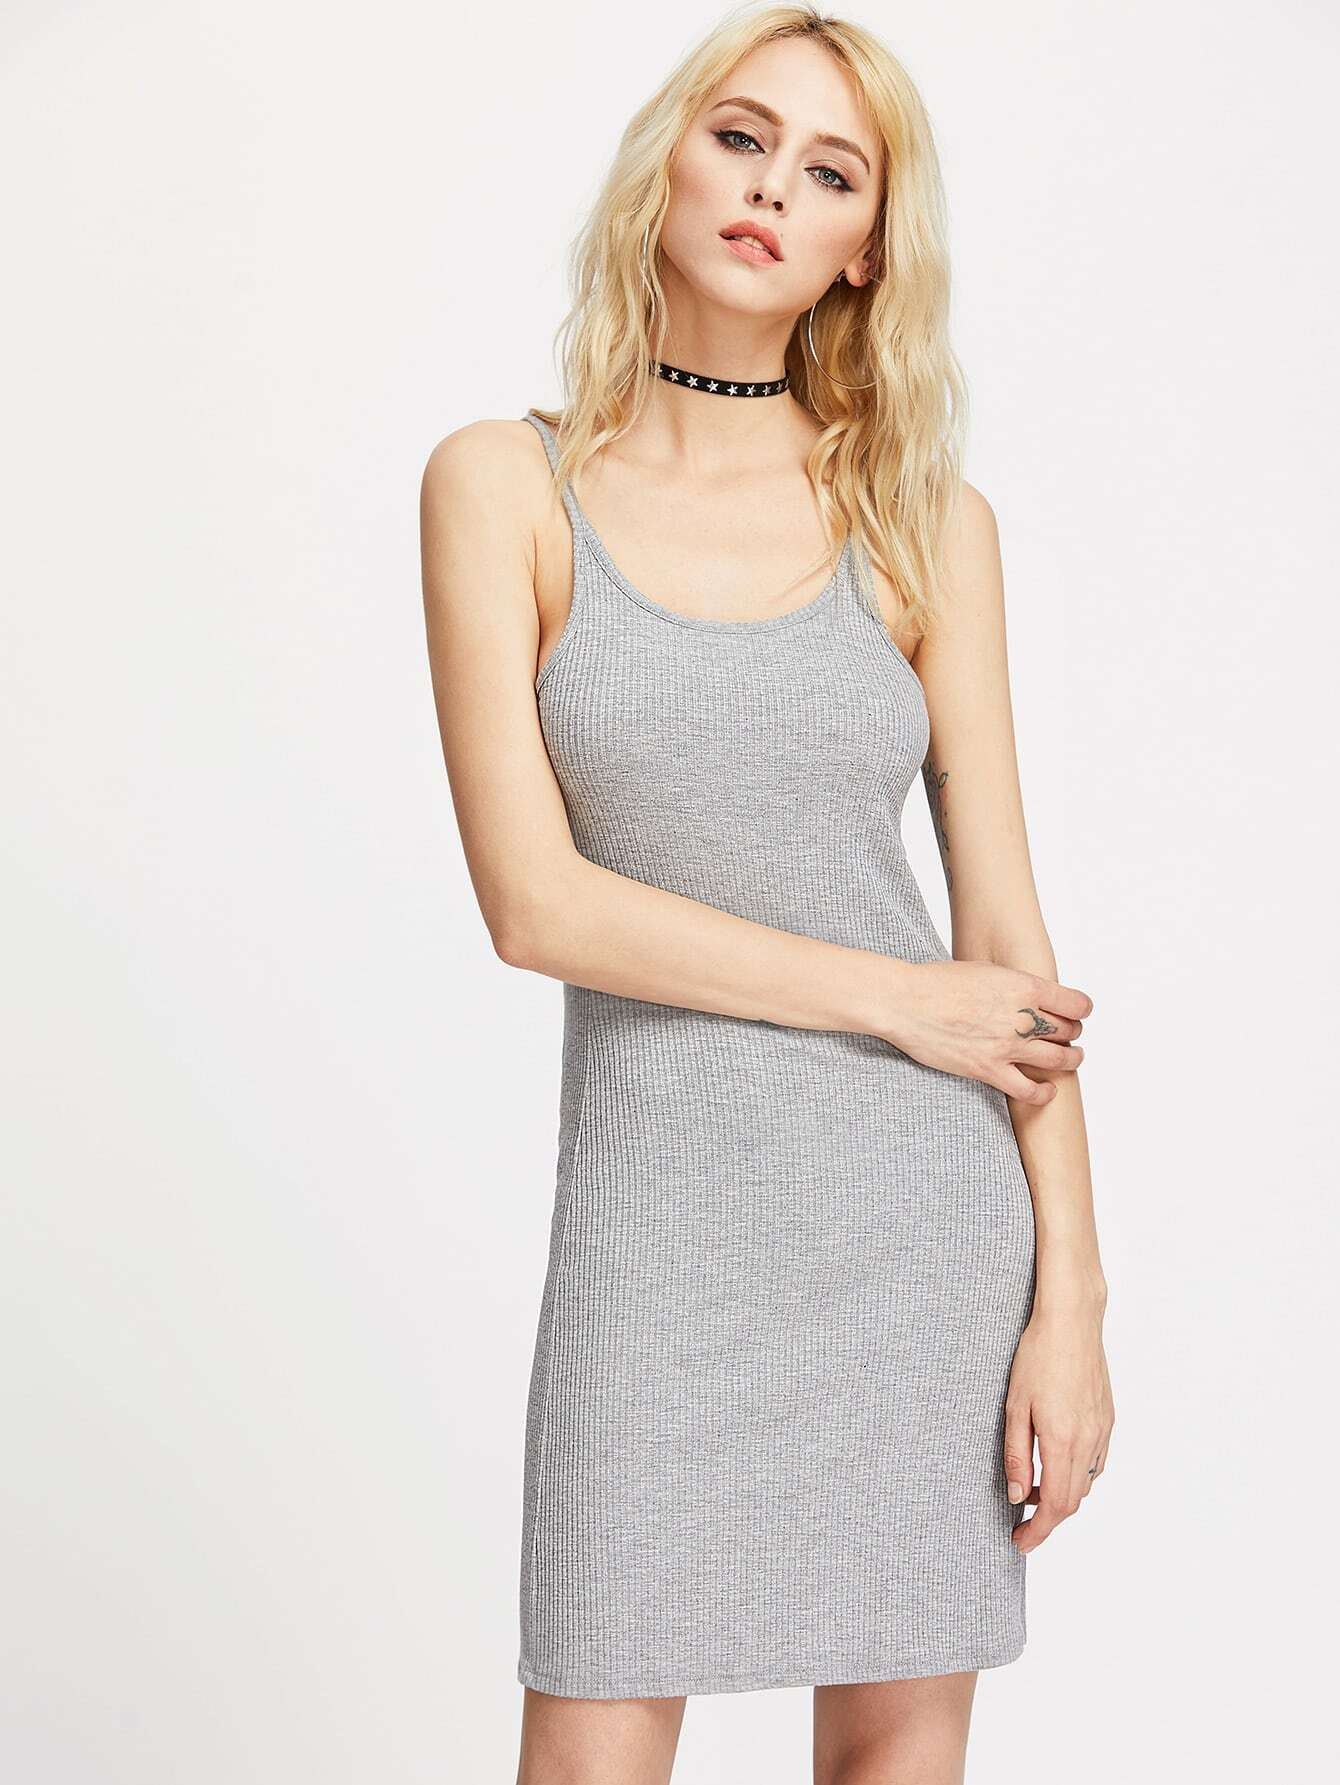 Ribbed Cami Dress dress170403452